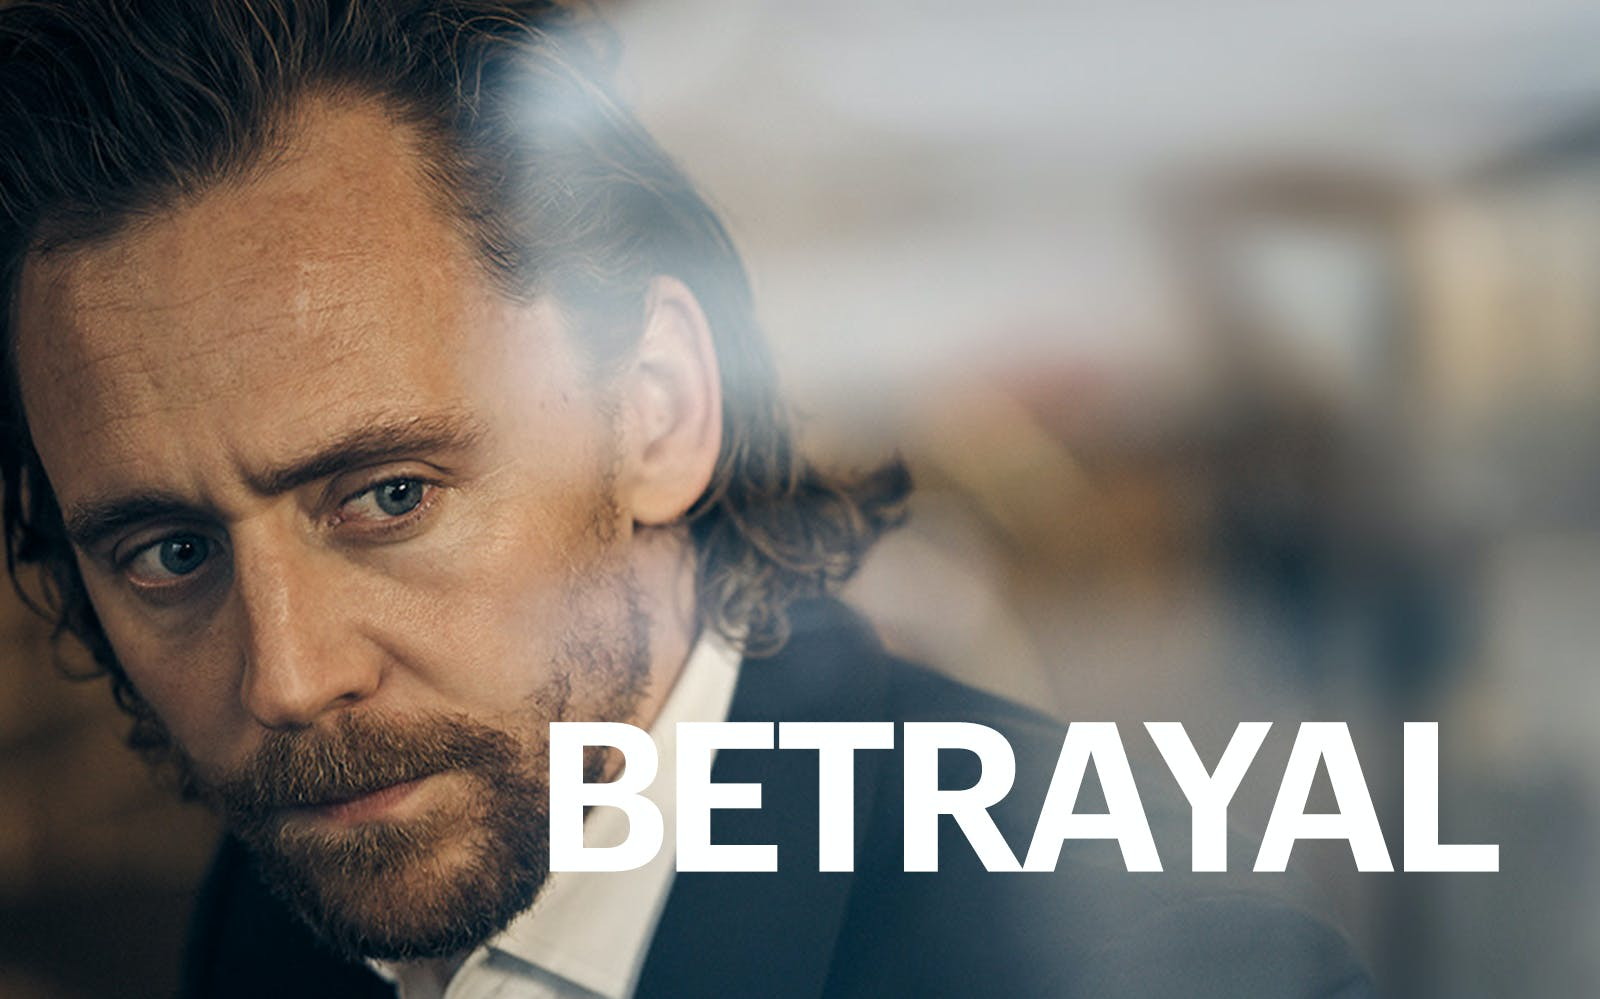 Betrayal West End